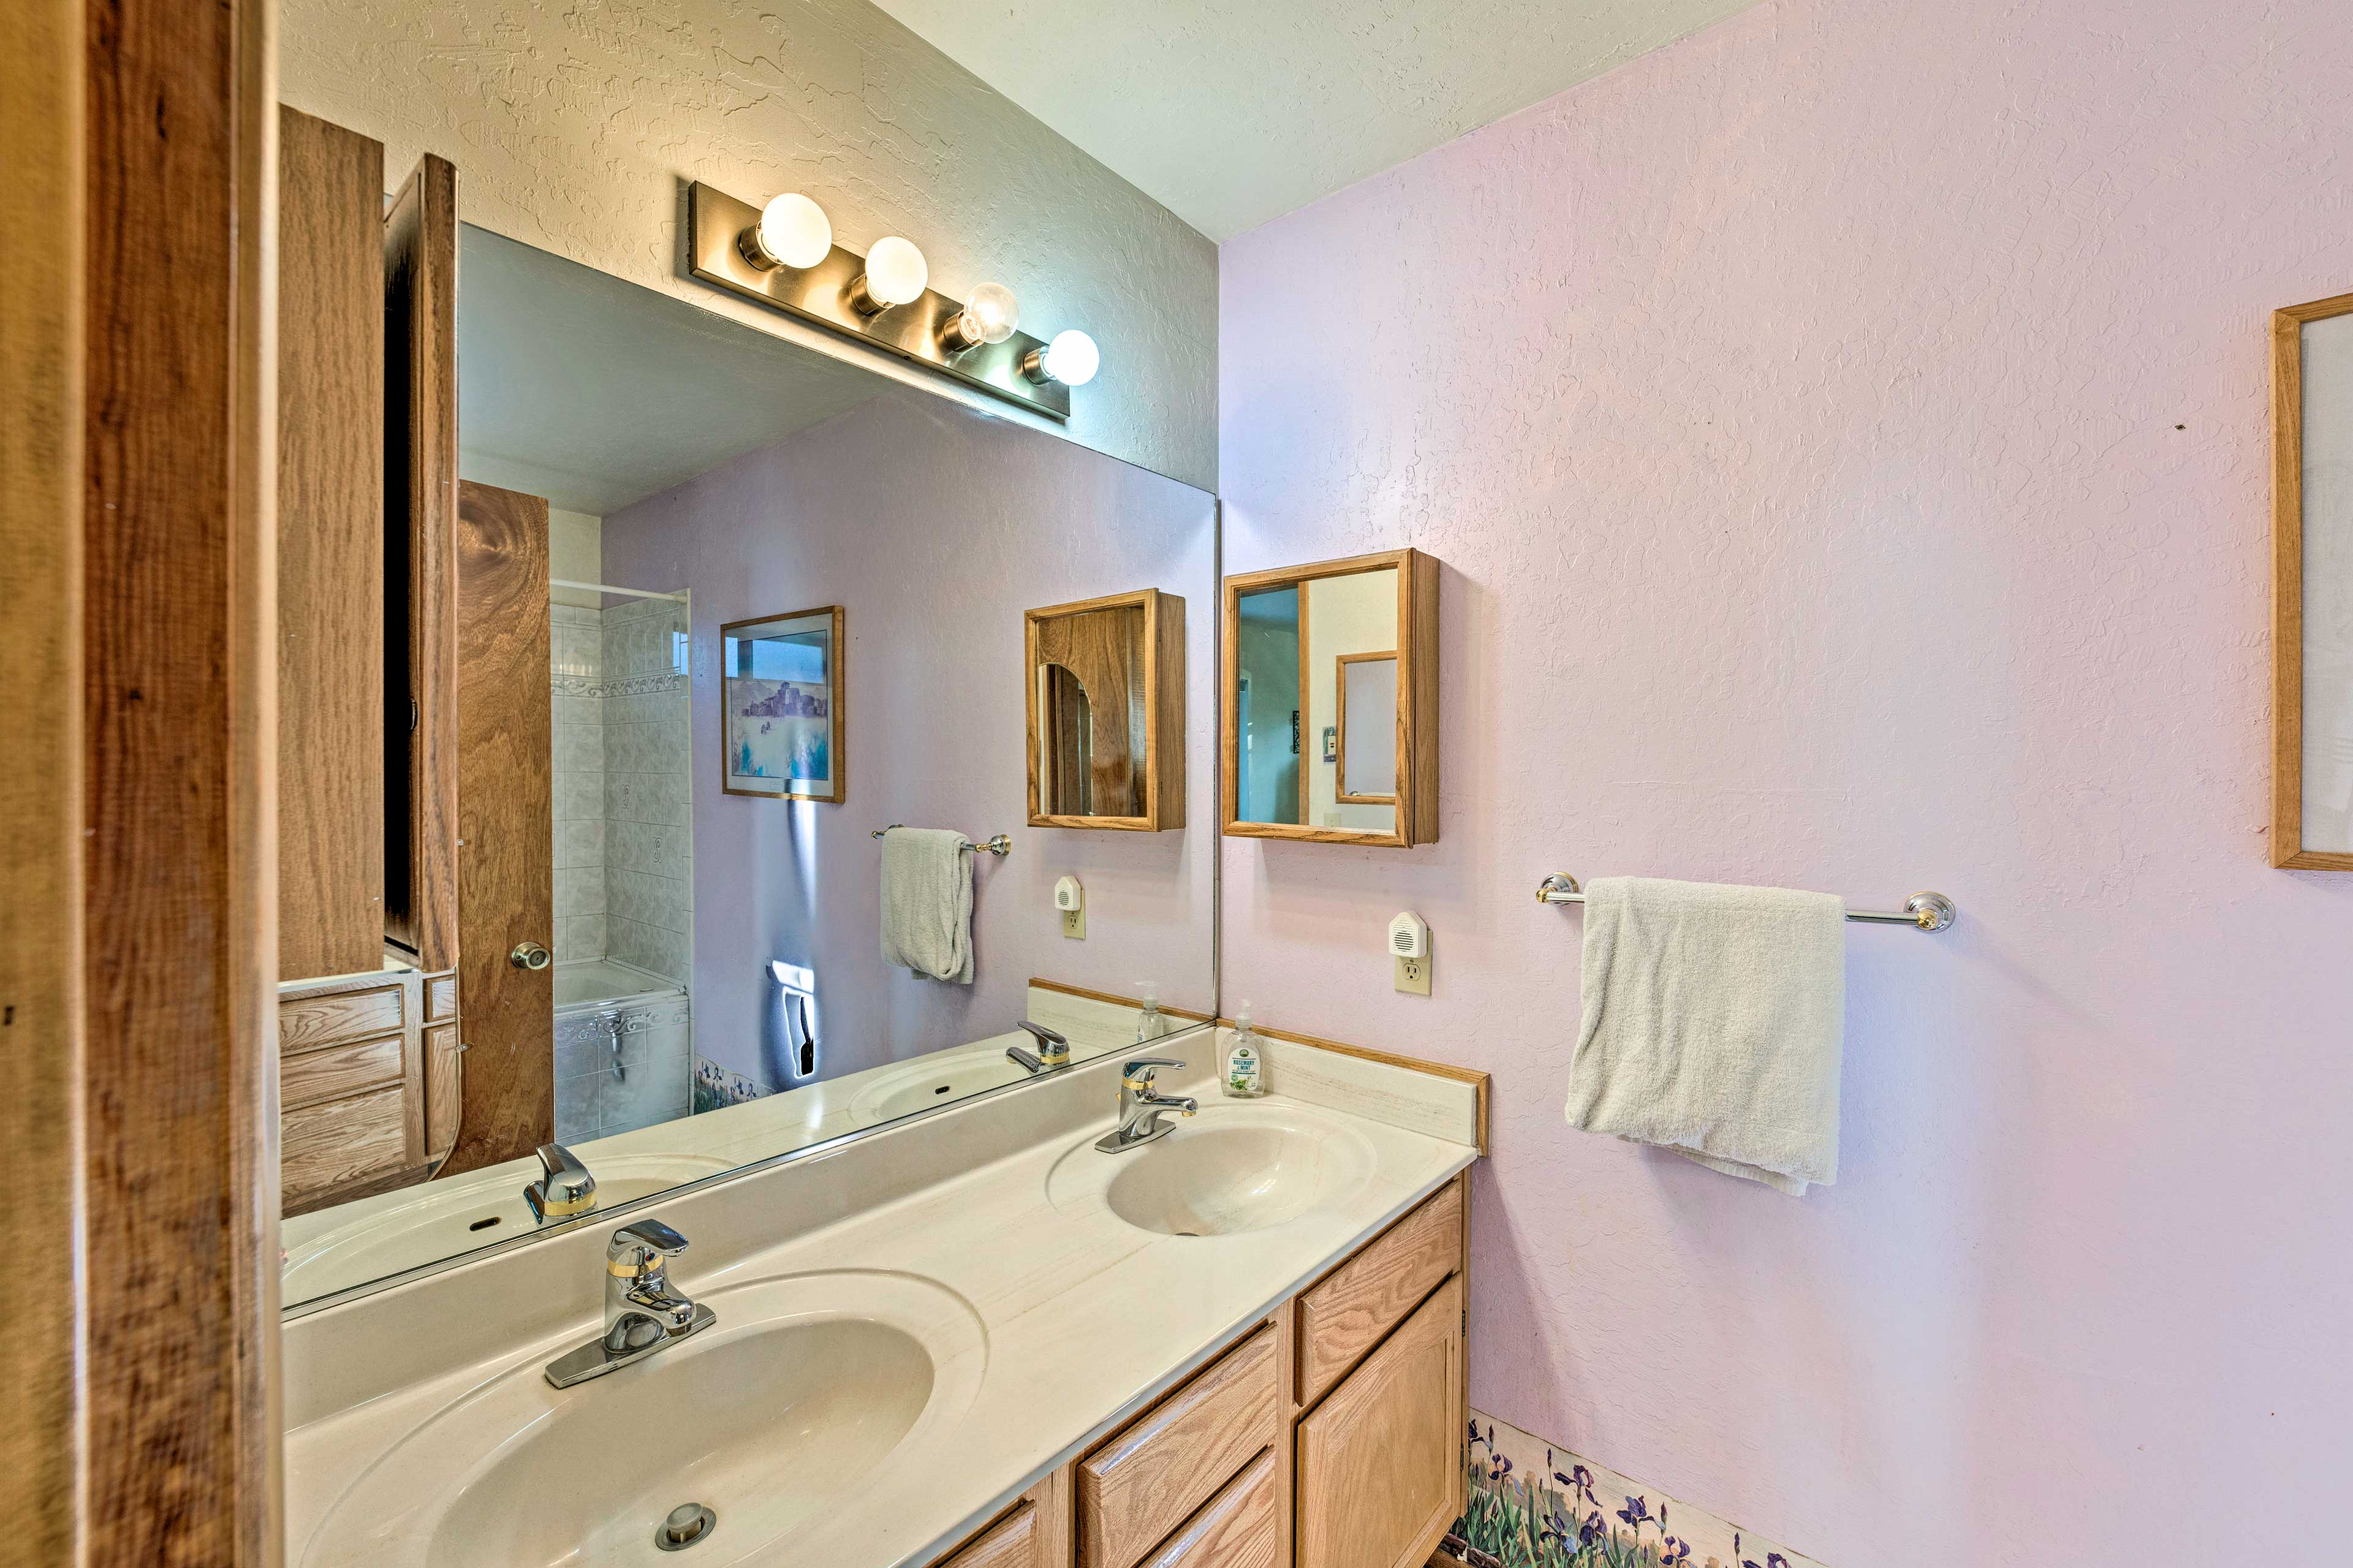 Brush your teeth in front of the dual sinks.